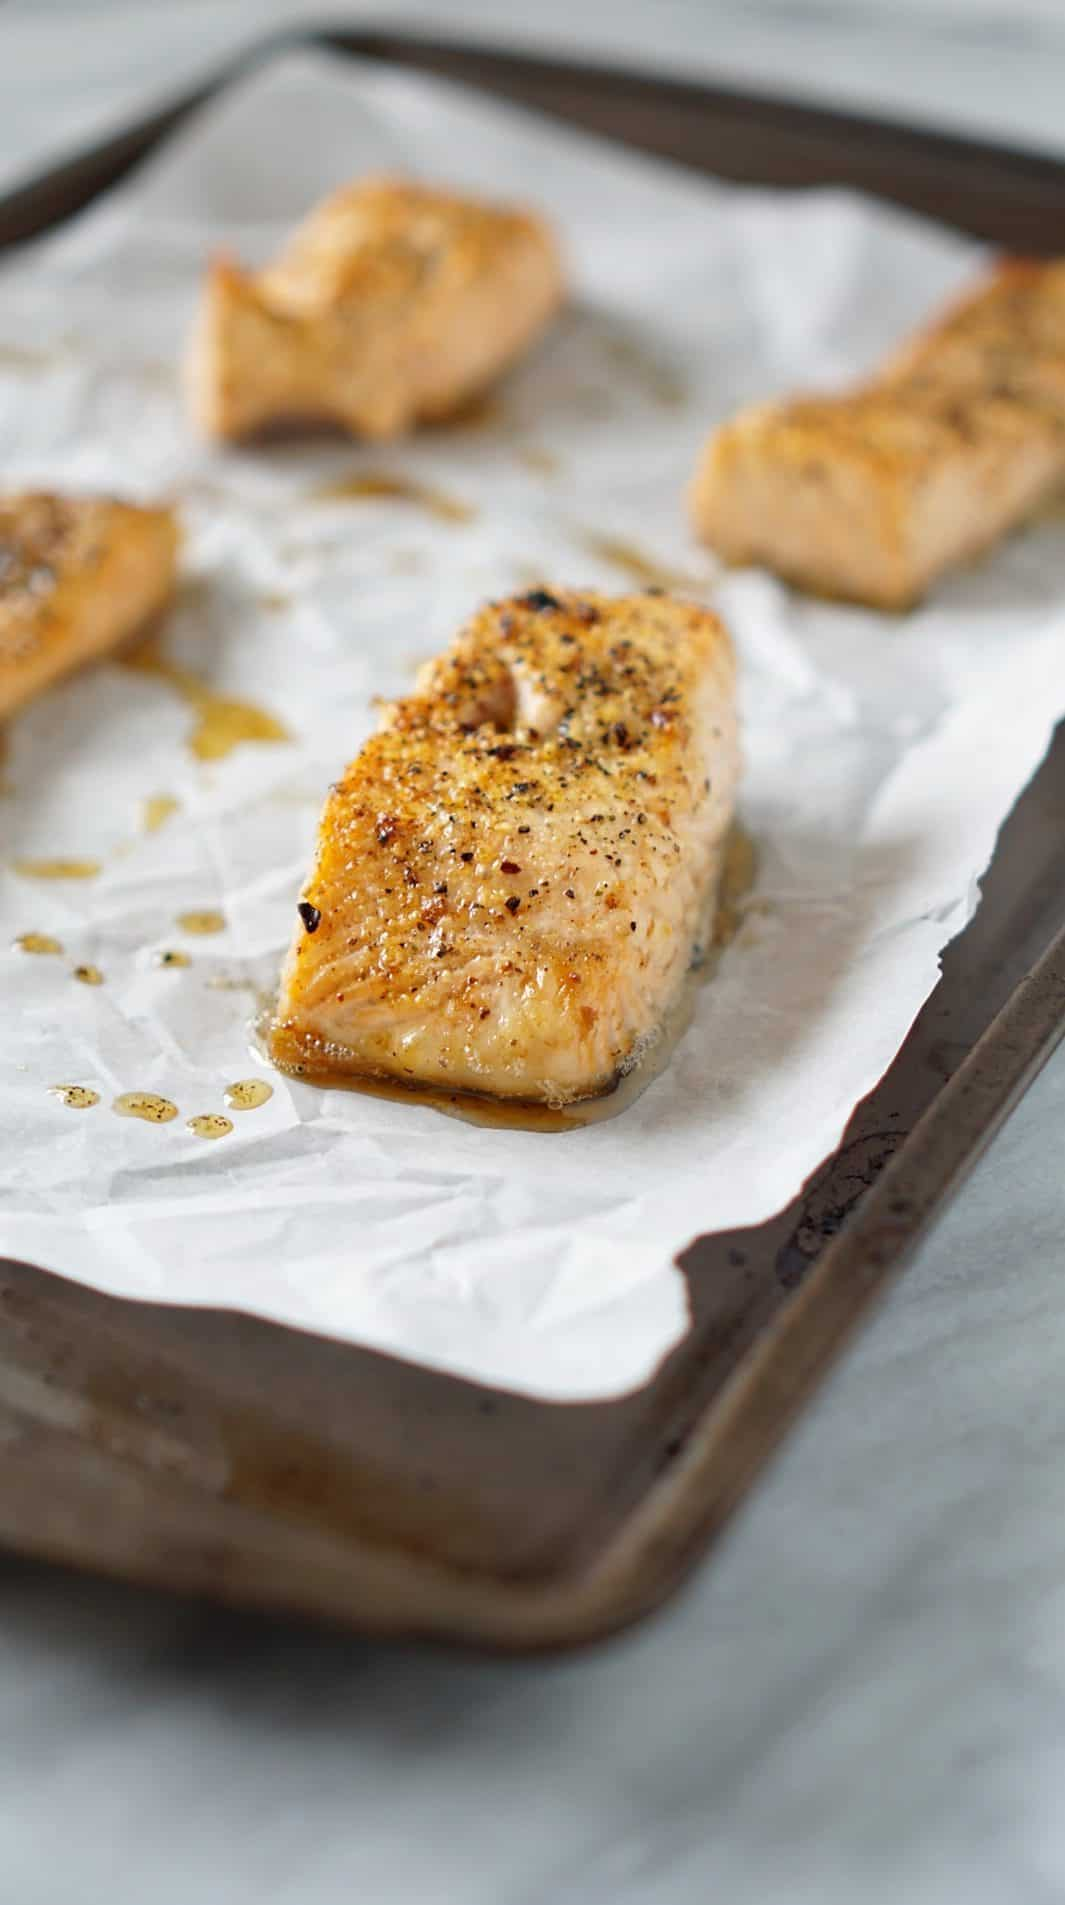 salmon filet on a baking sheet